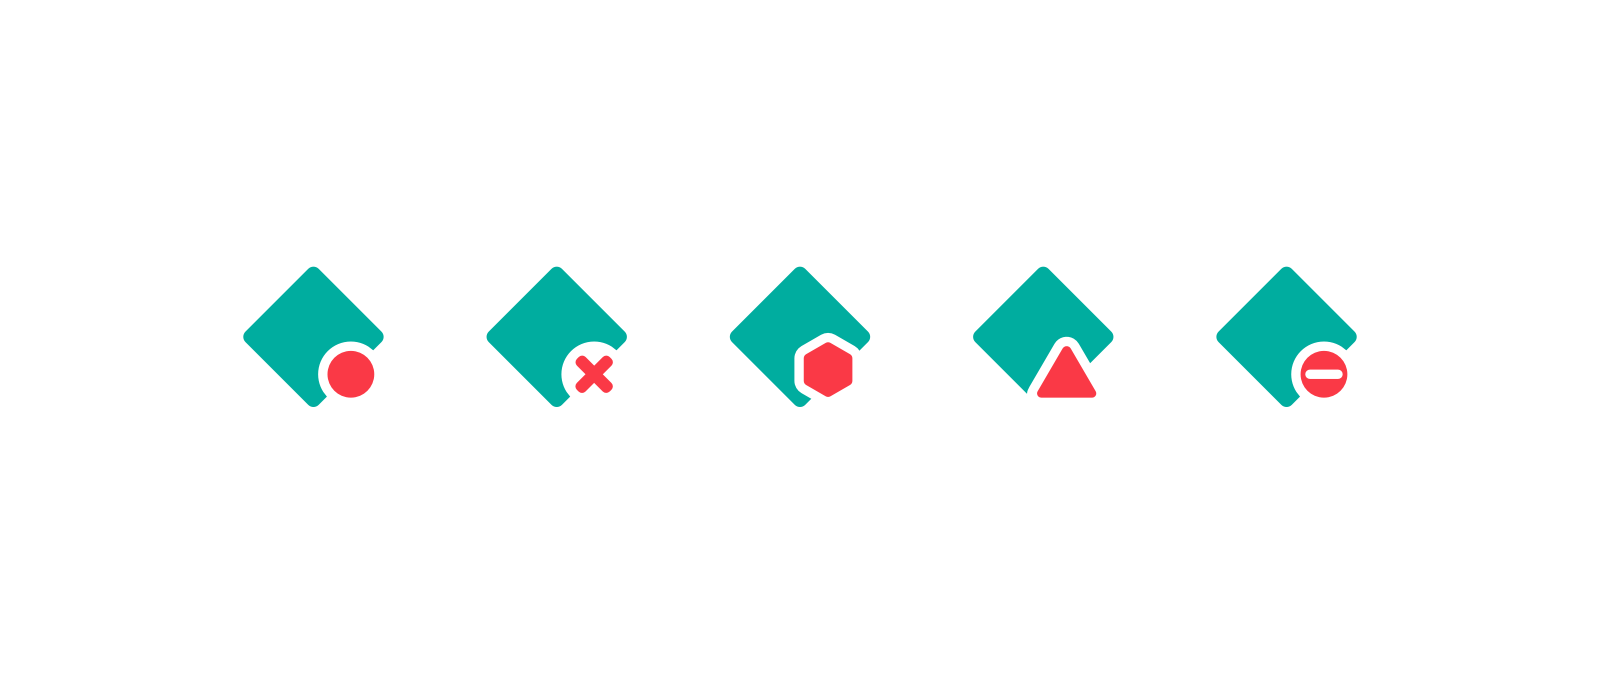 5 different versions of the favicon for a failed deploy. 1. circle. 2. cross, 3. hexagon, 4. triangle, 5. circle with a horizontal white line through it.